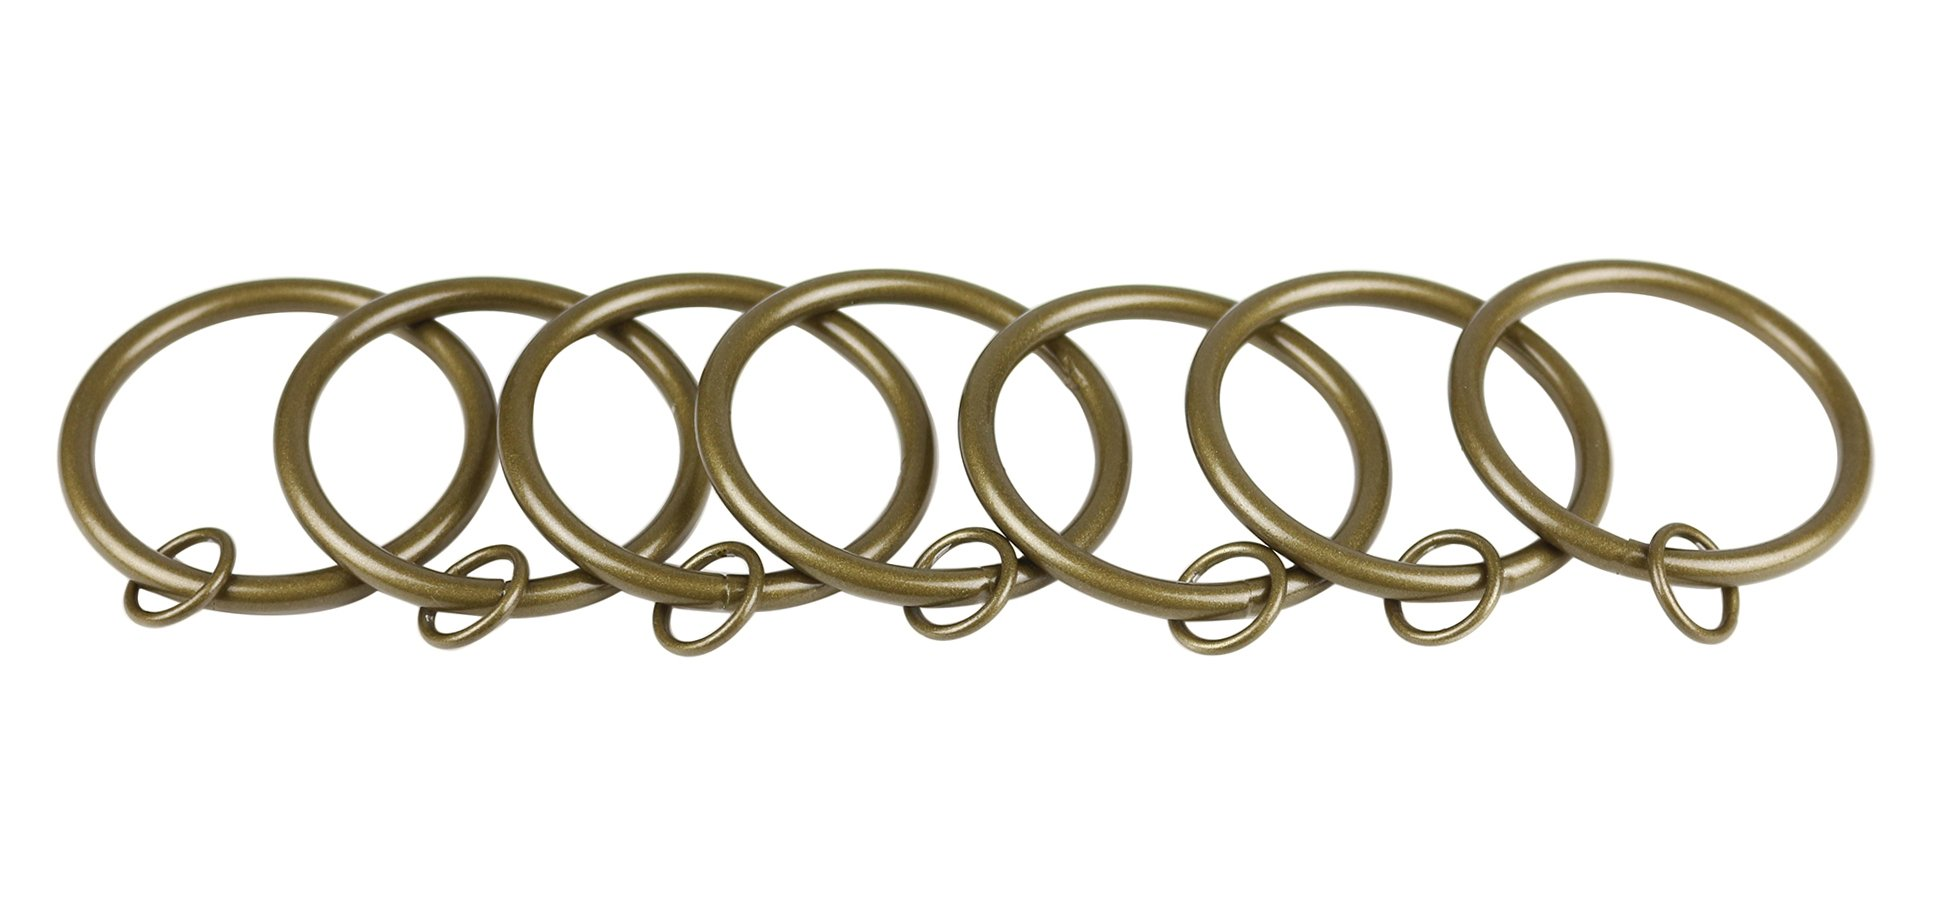 Urbanest Set of 8 Metal Curtain Eyelet Rings 3 Inch Inner Diameter (Antique Gold) by Urbanest (Image #1)